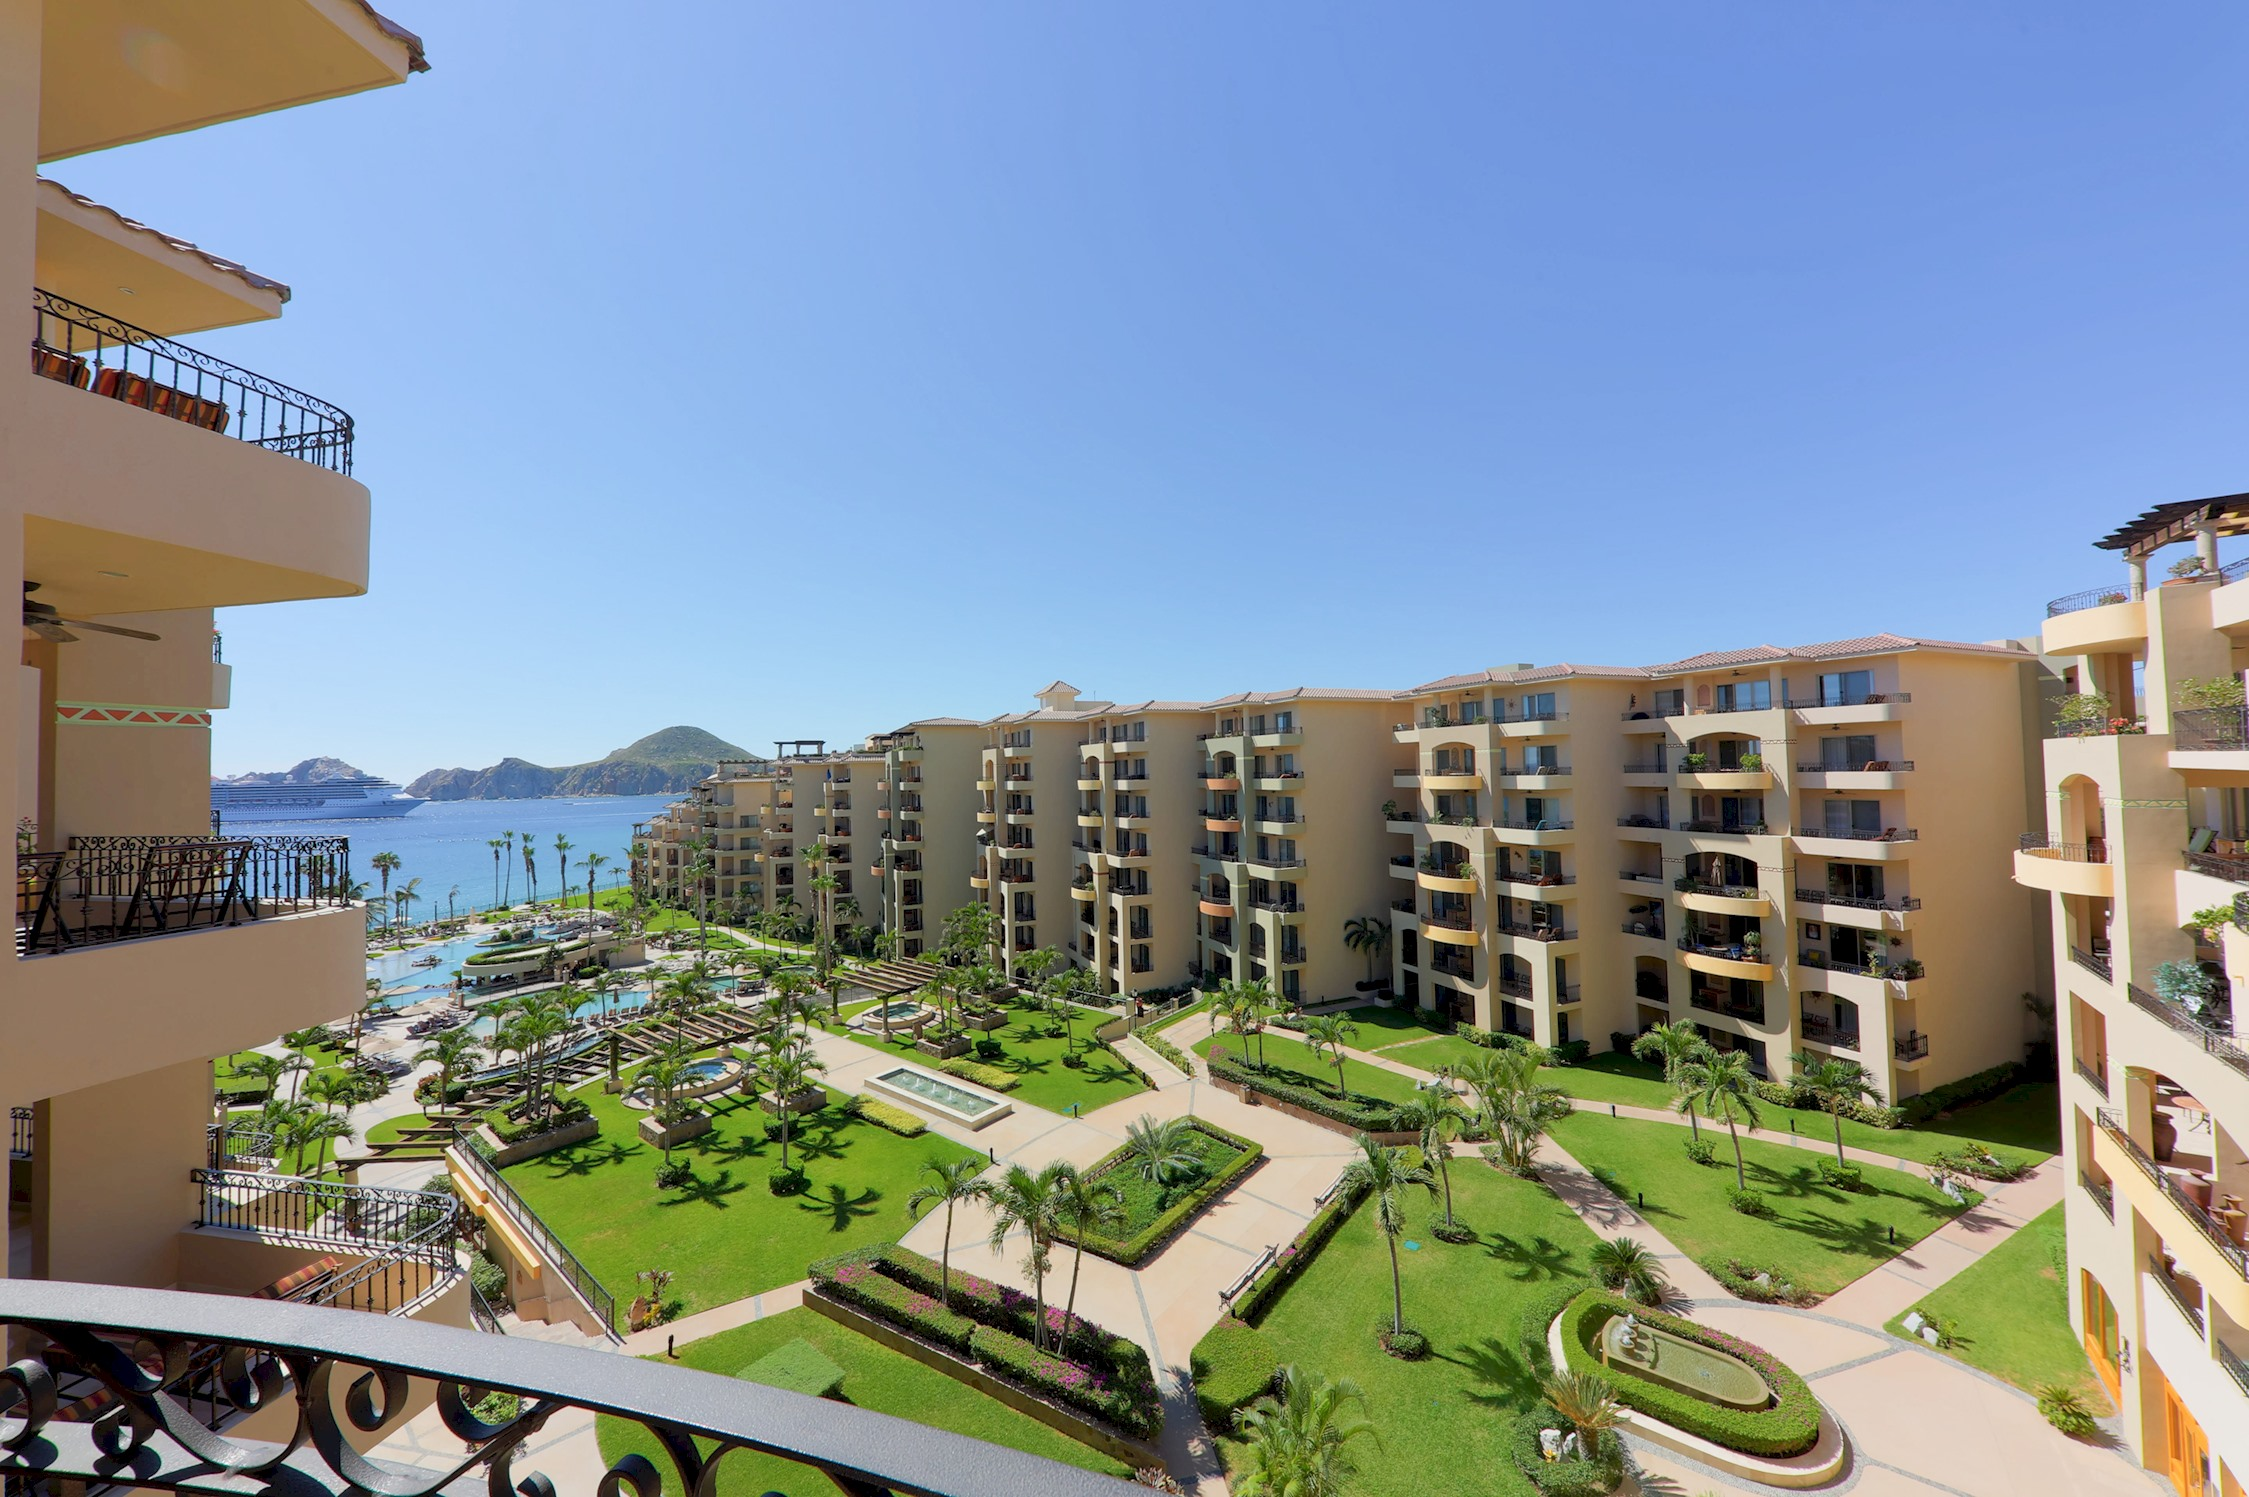 Apartment Premium Ocean View  2 Bedrooms - 3 Bathrooms photo 22367953